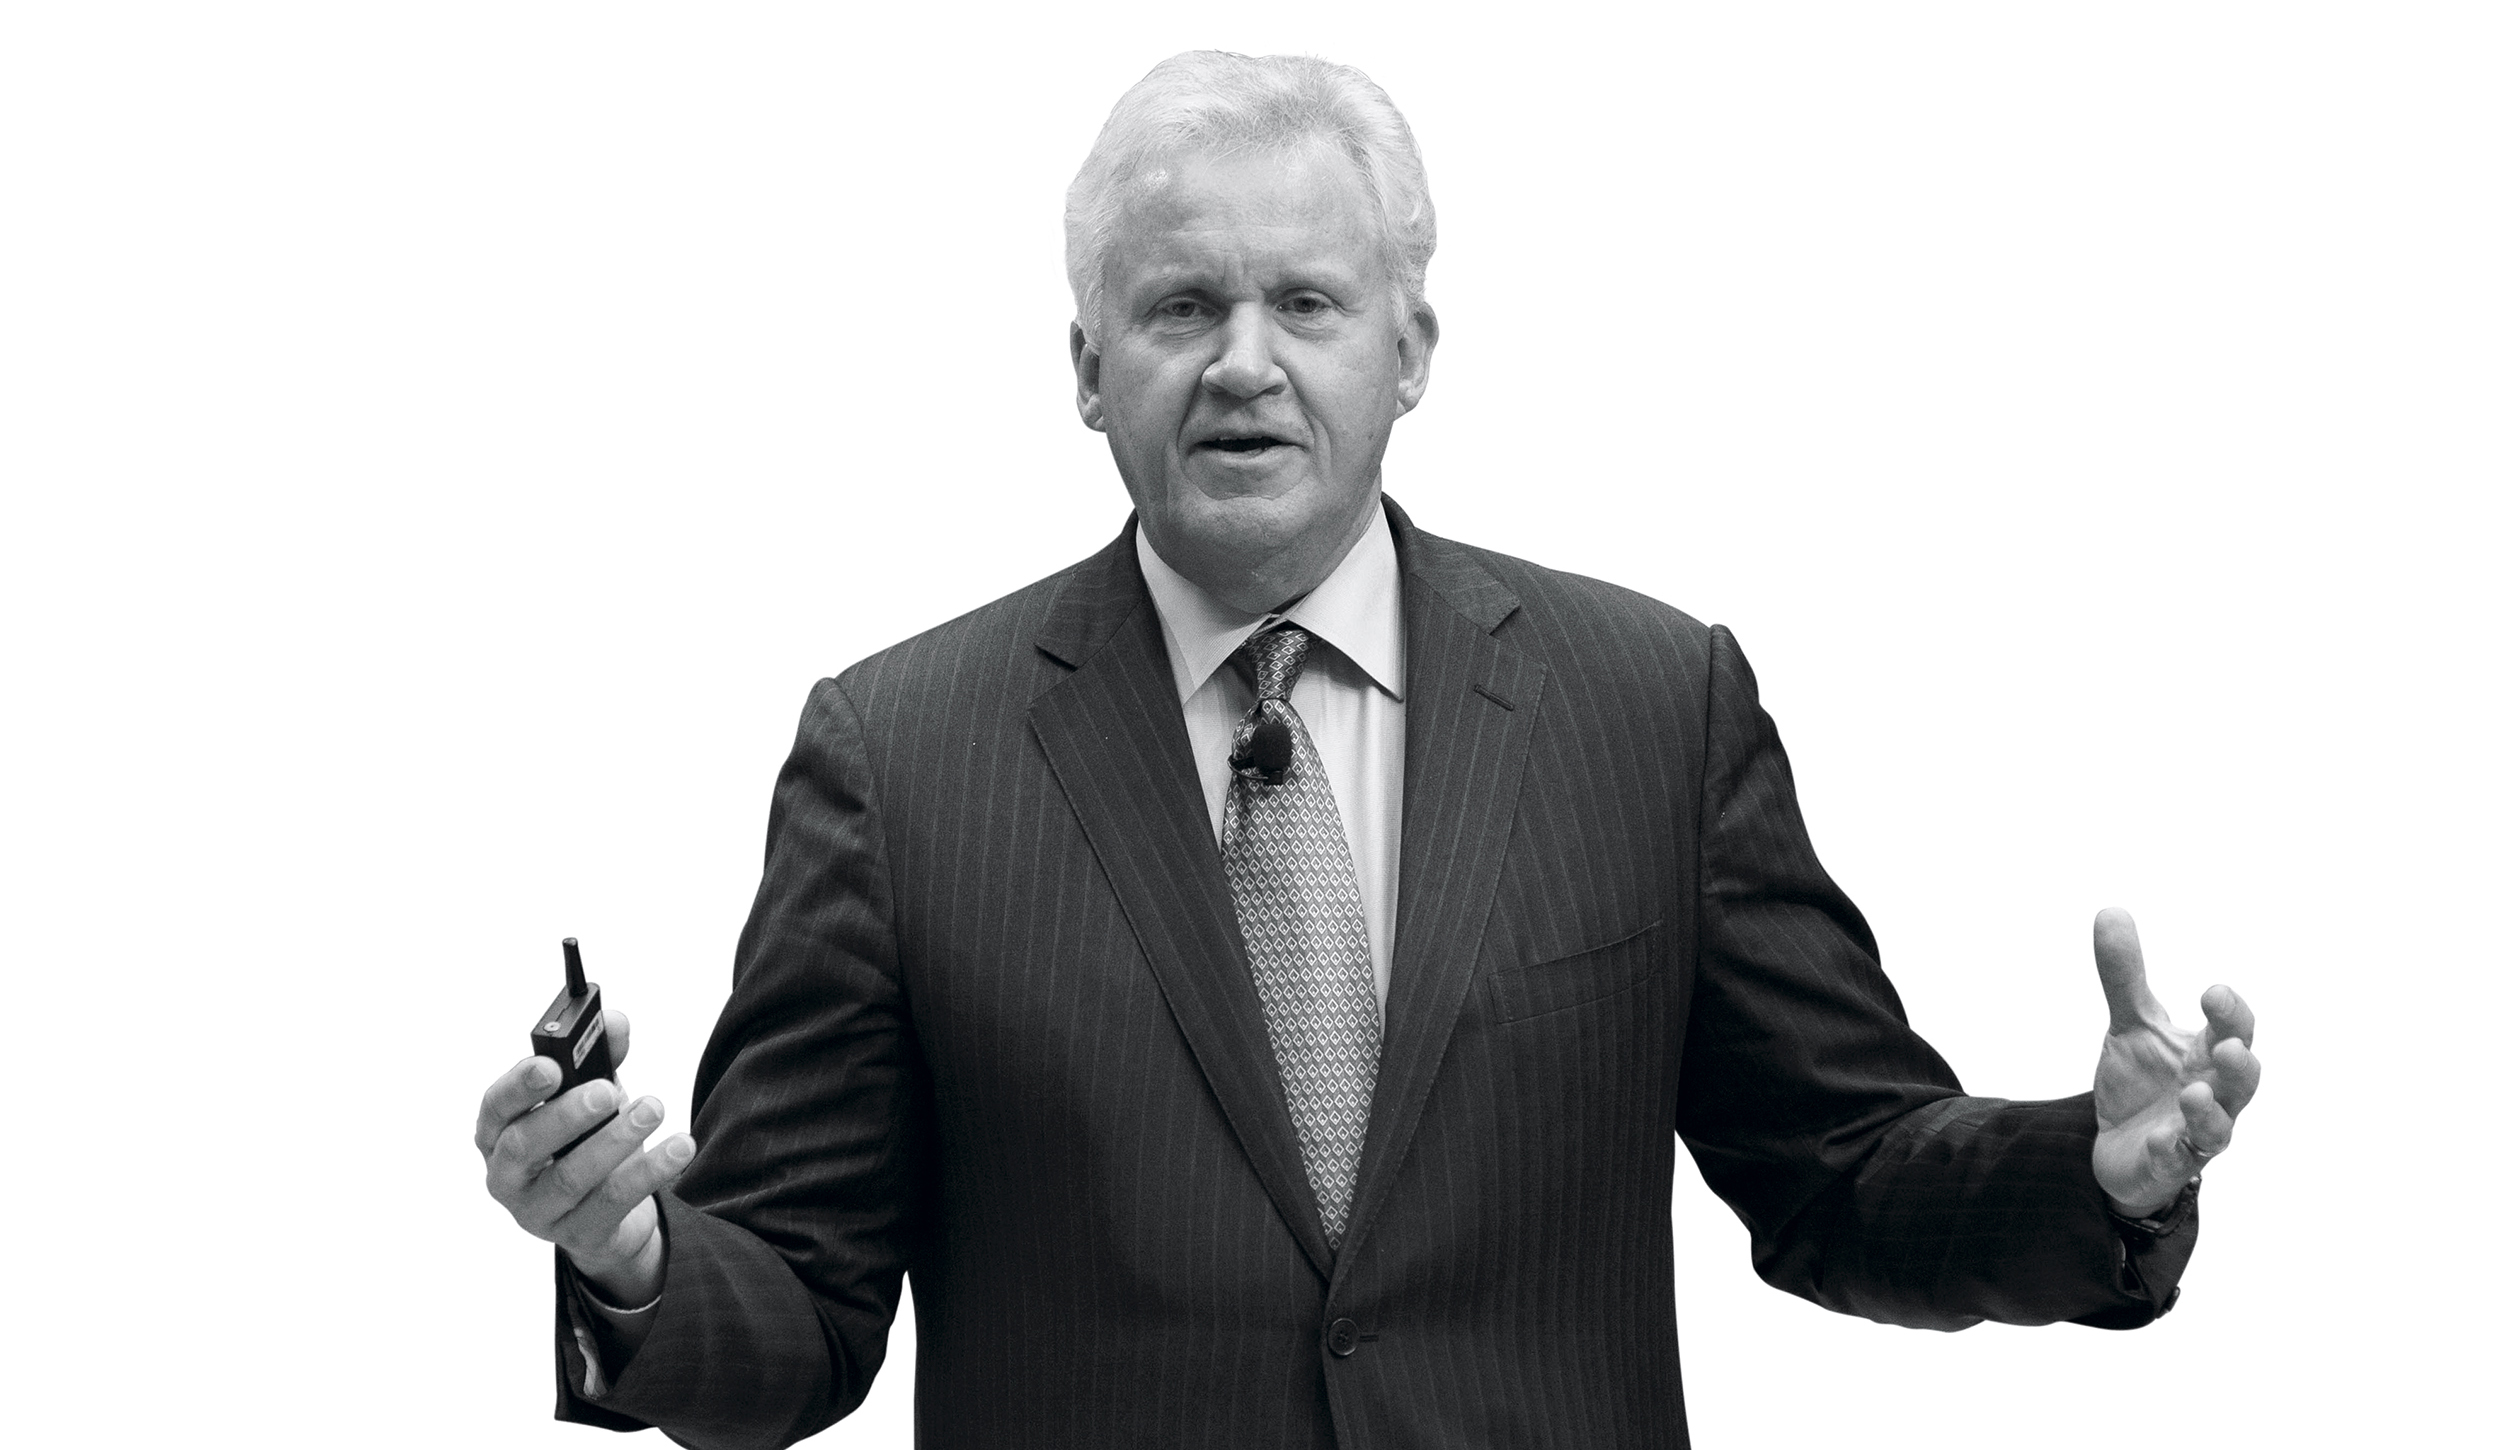 General Electric Co. Chief Executive Officer Jeffrey Immelt And Statoil ASA Chief Executive Officer Eldar Saetre Speak At Ecomagination Forum